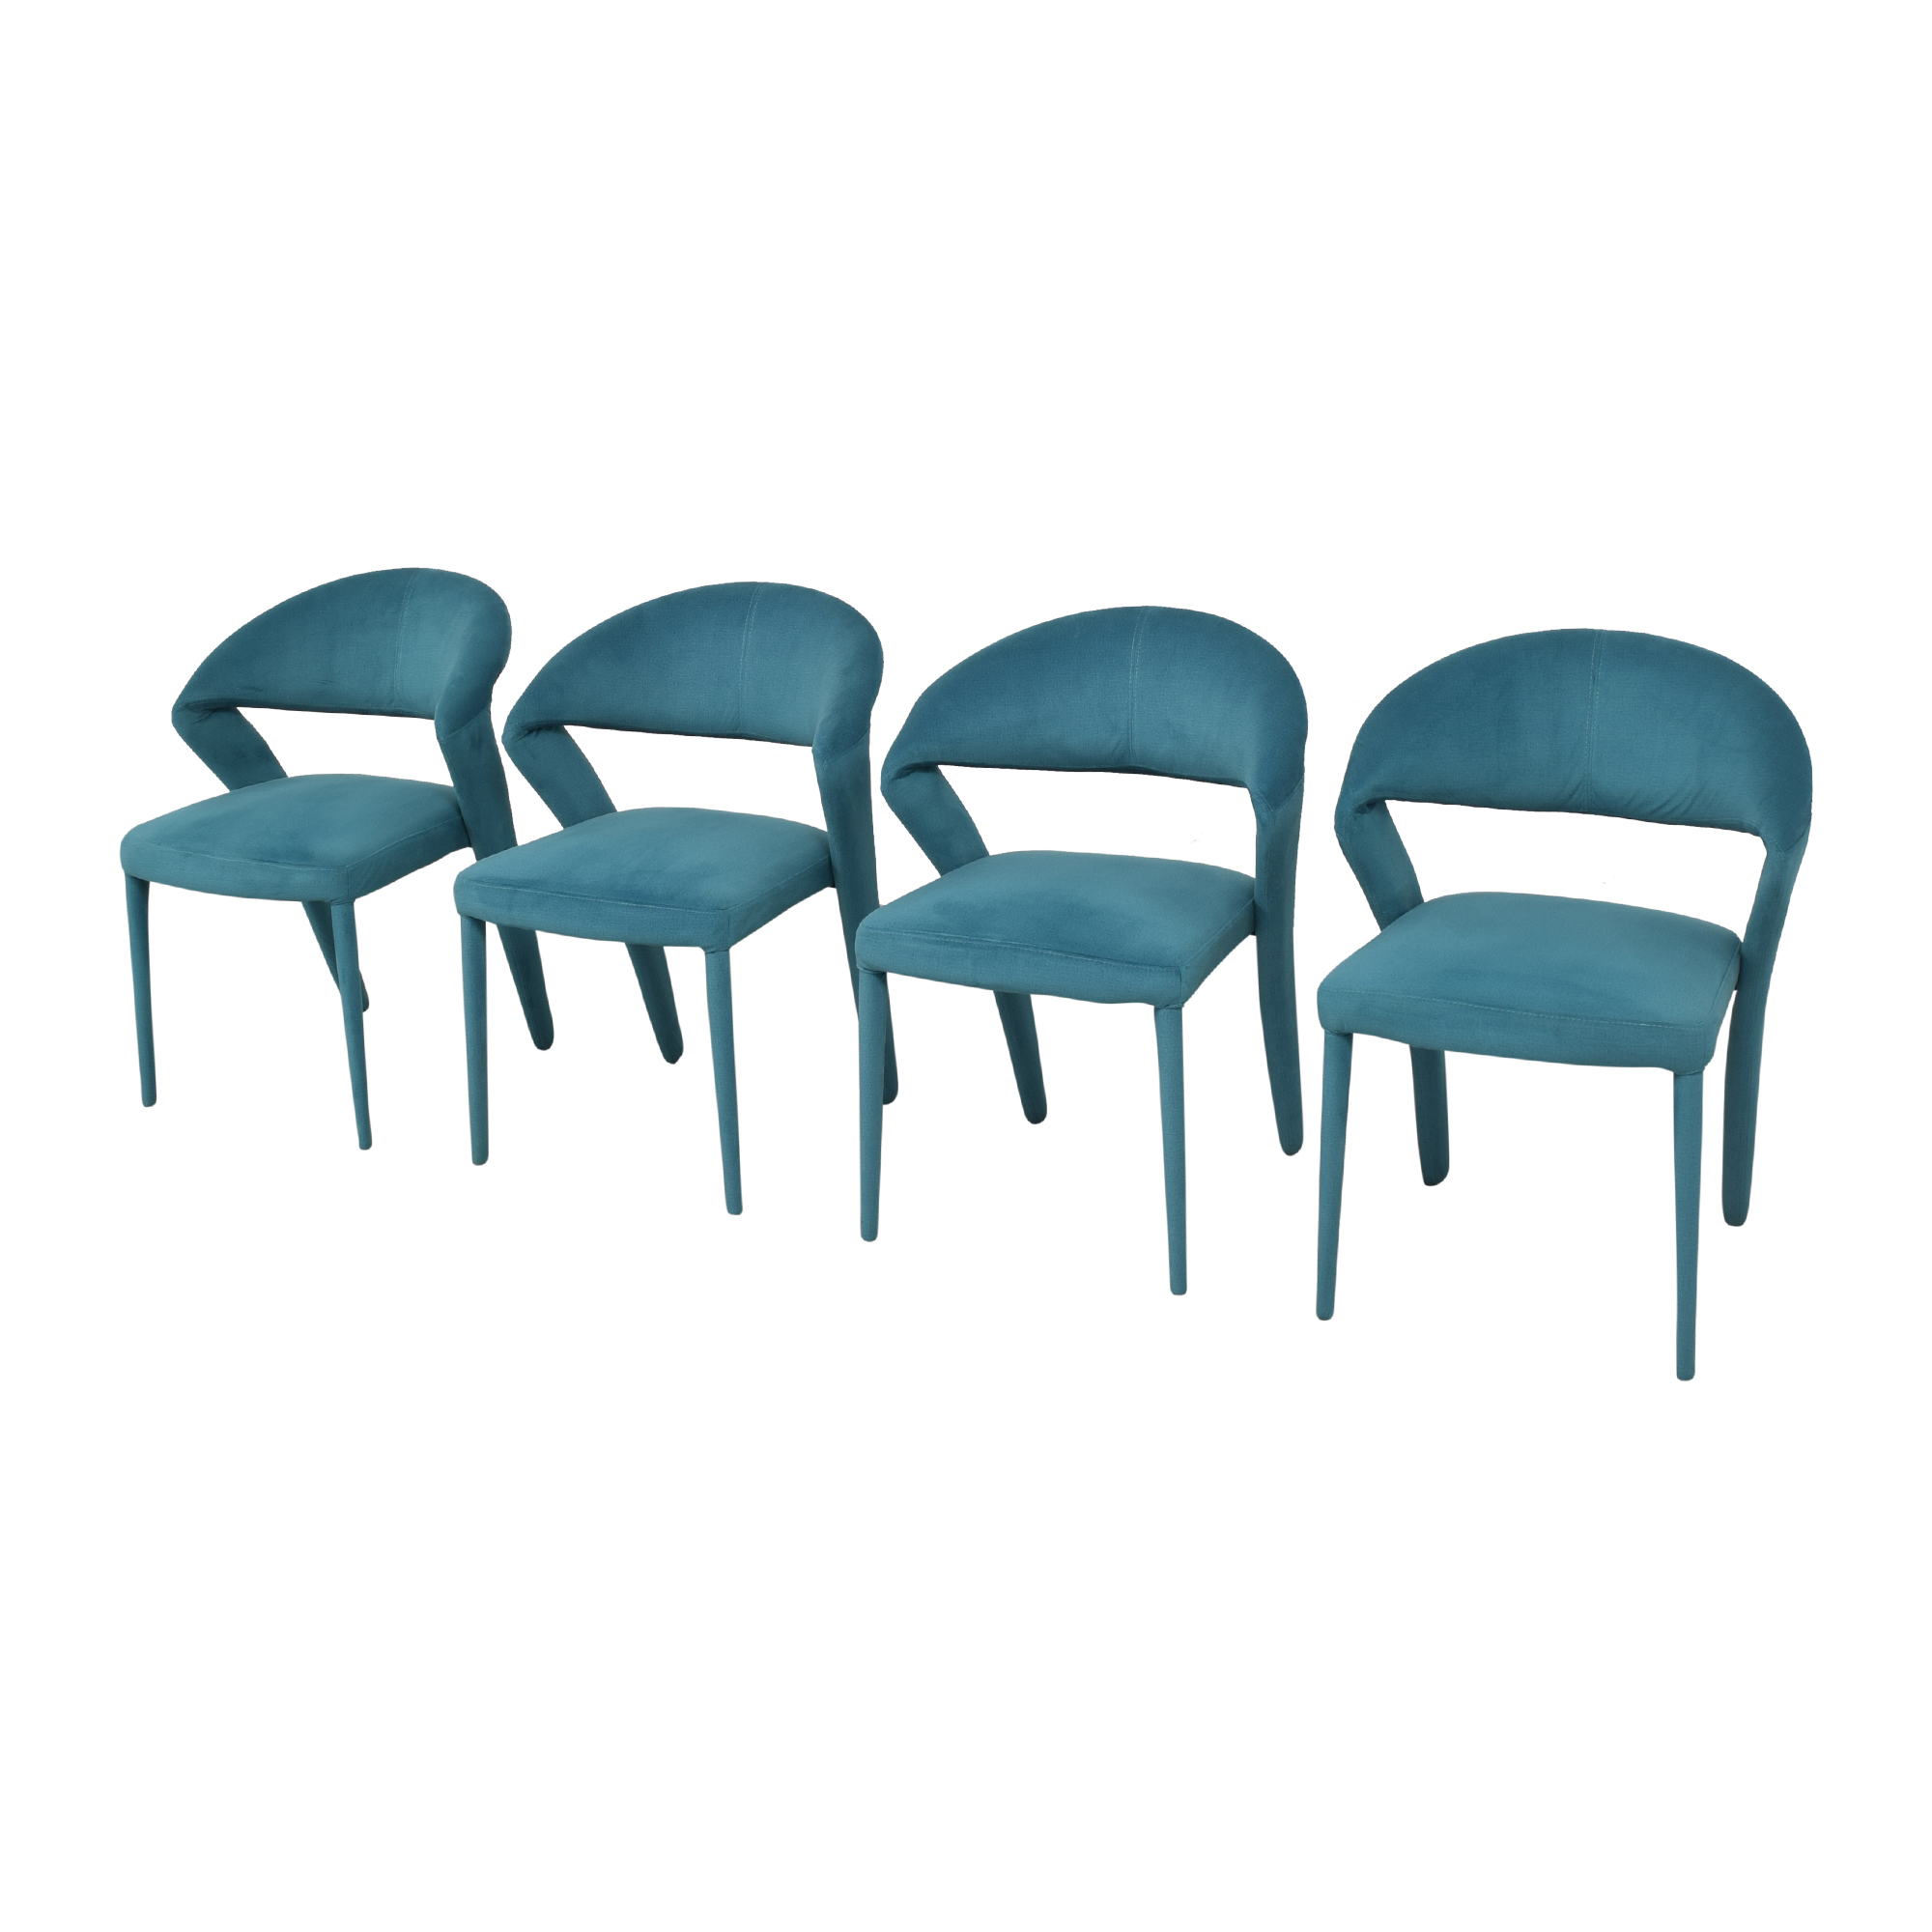 Moe's Home Collection Moe's Home Collection Lennox Dining Chairs blue